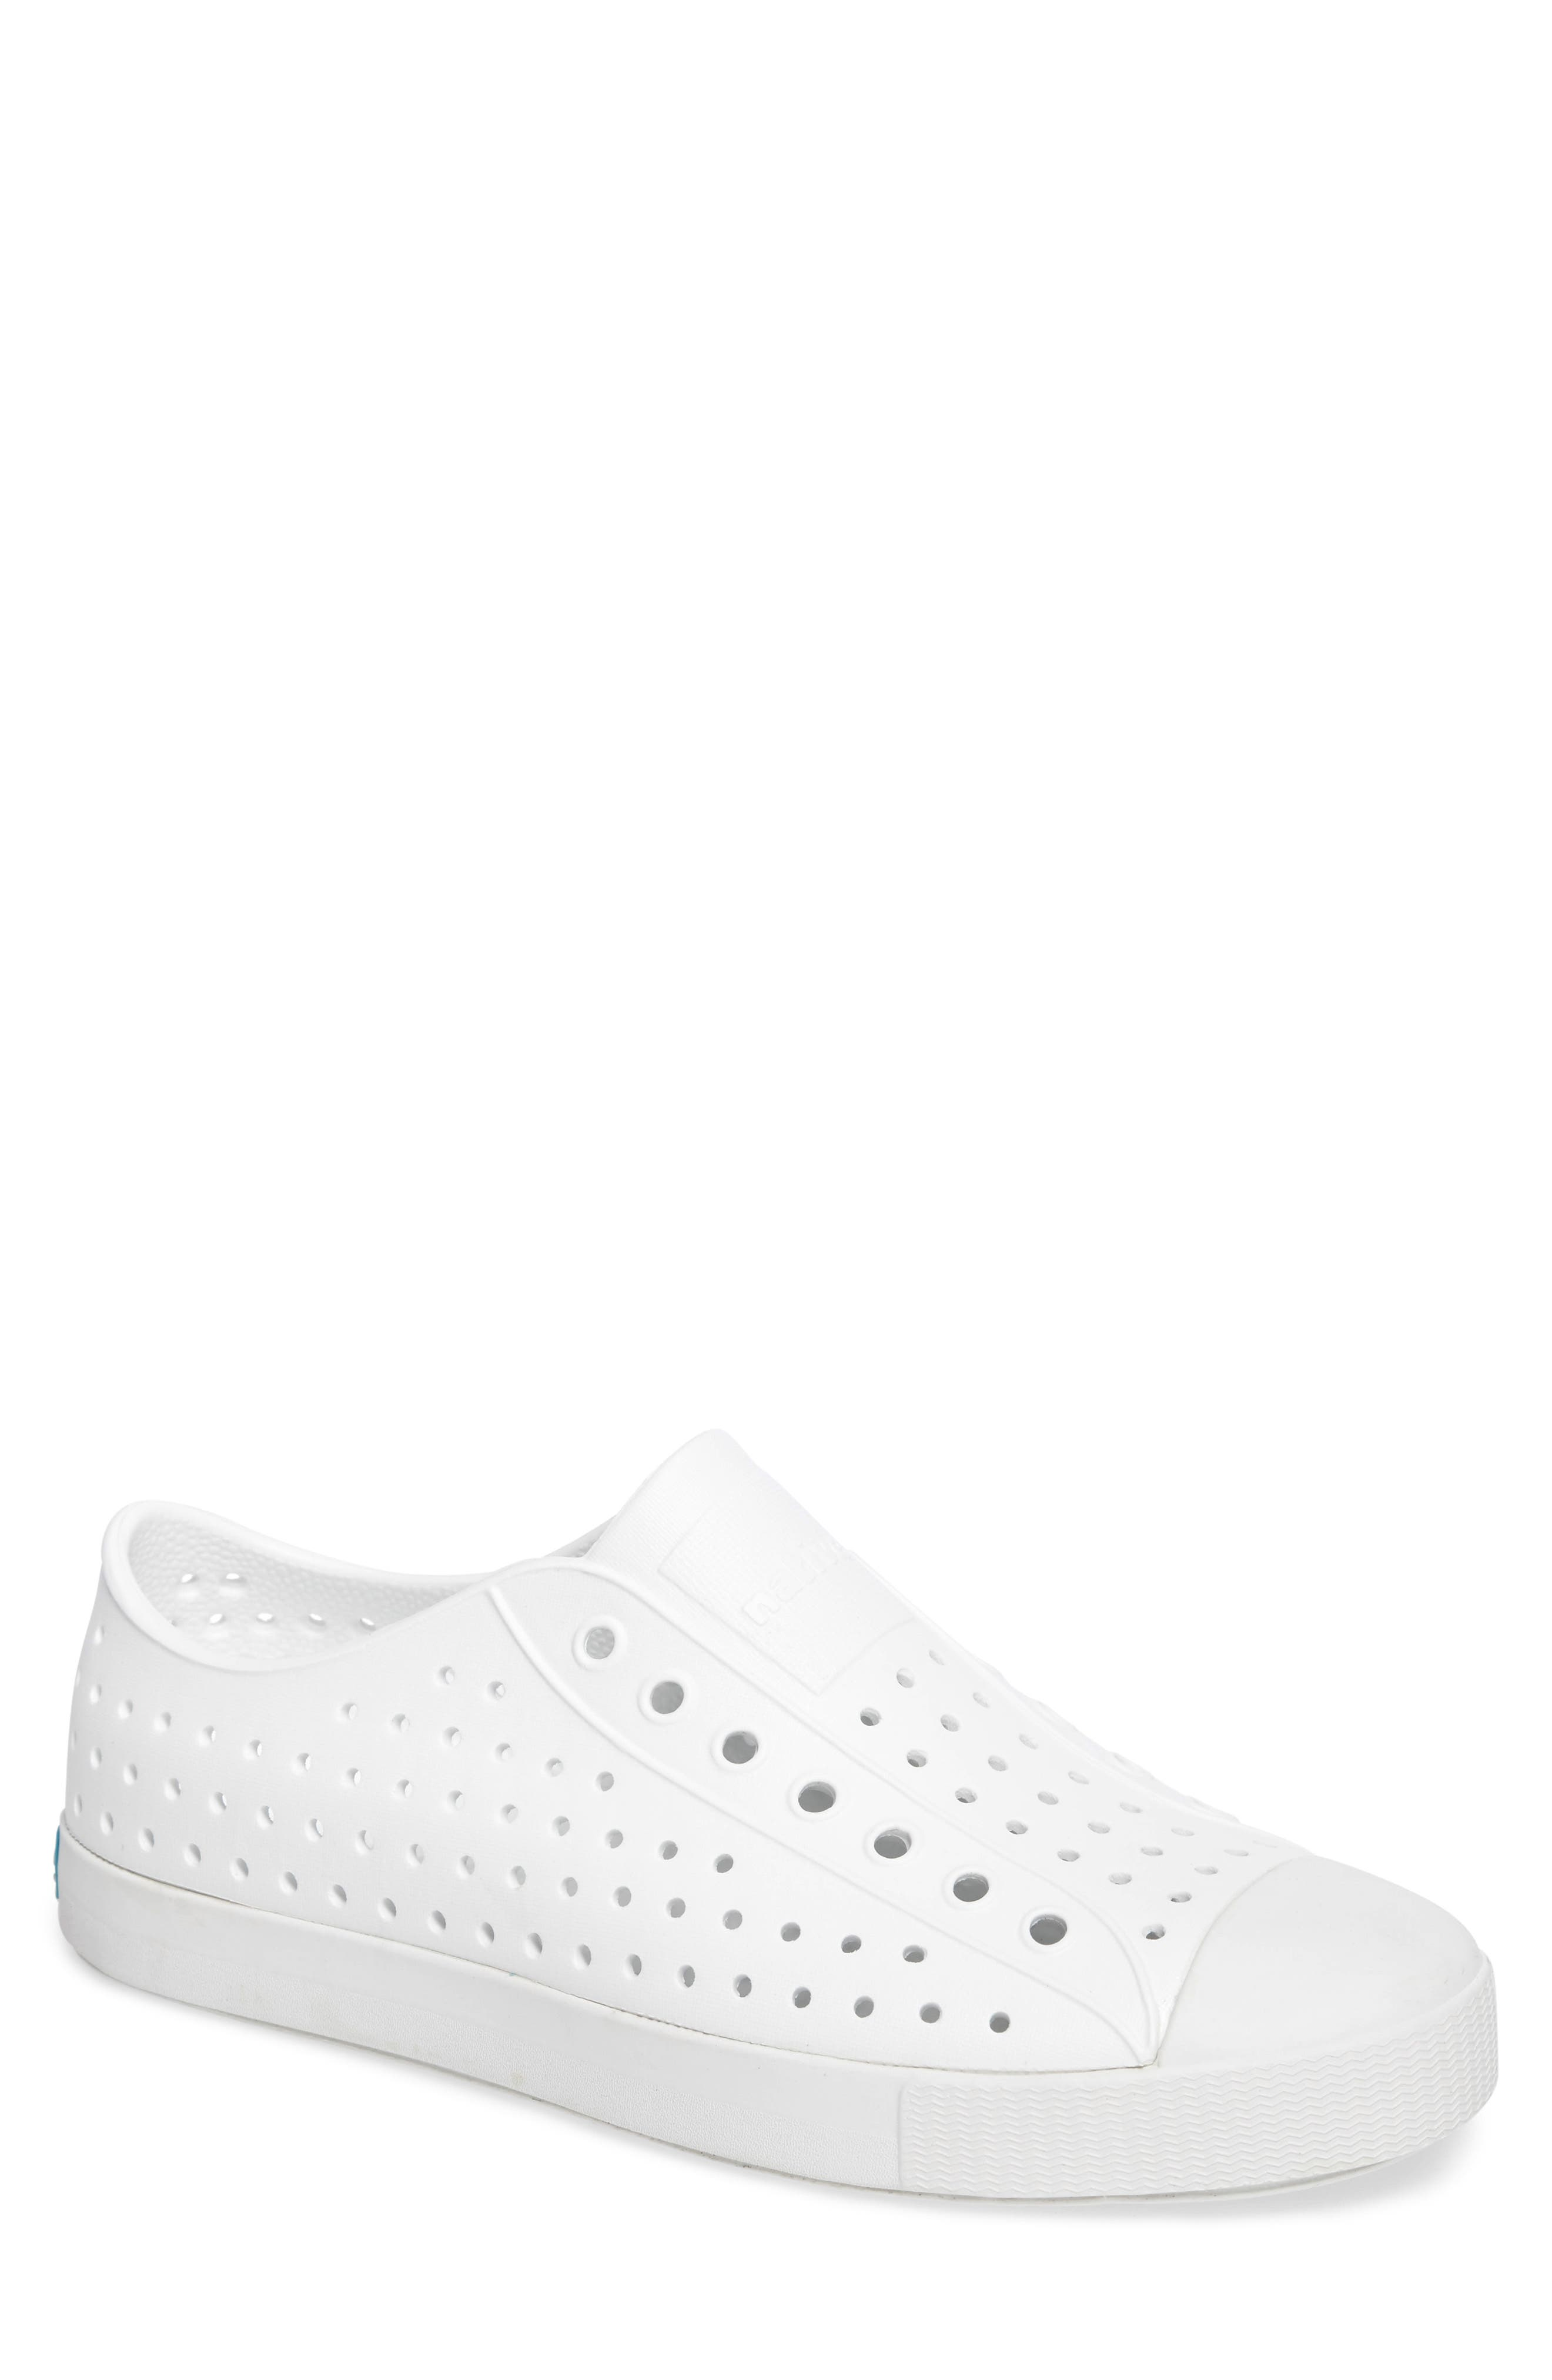 'Jefferson' Slip-On,                             Main thumbnail 1, color,                             SHELL WHITE SOLID